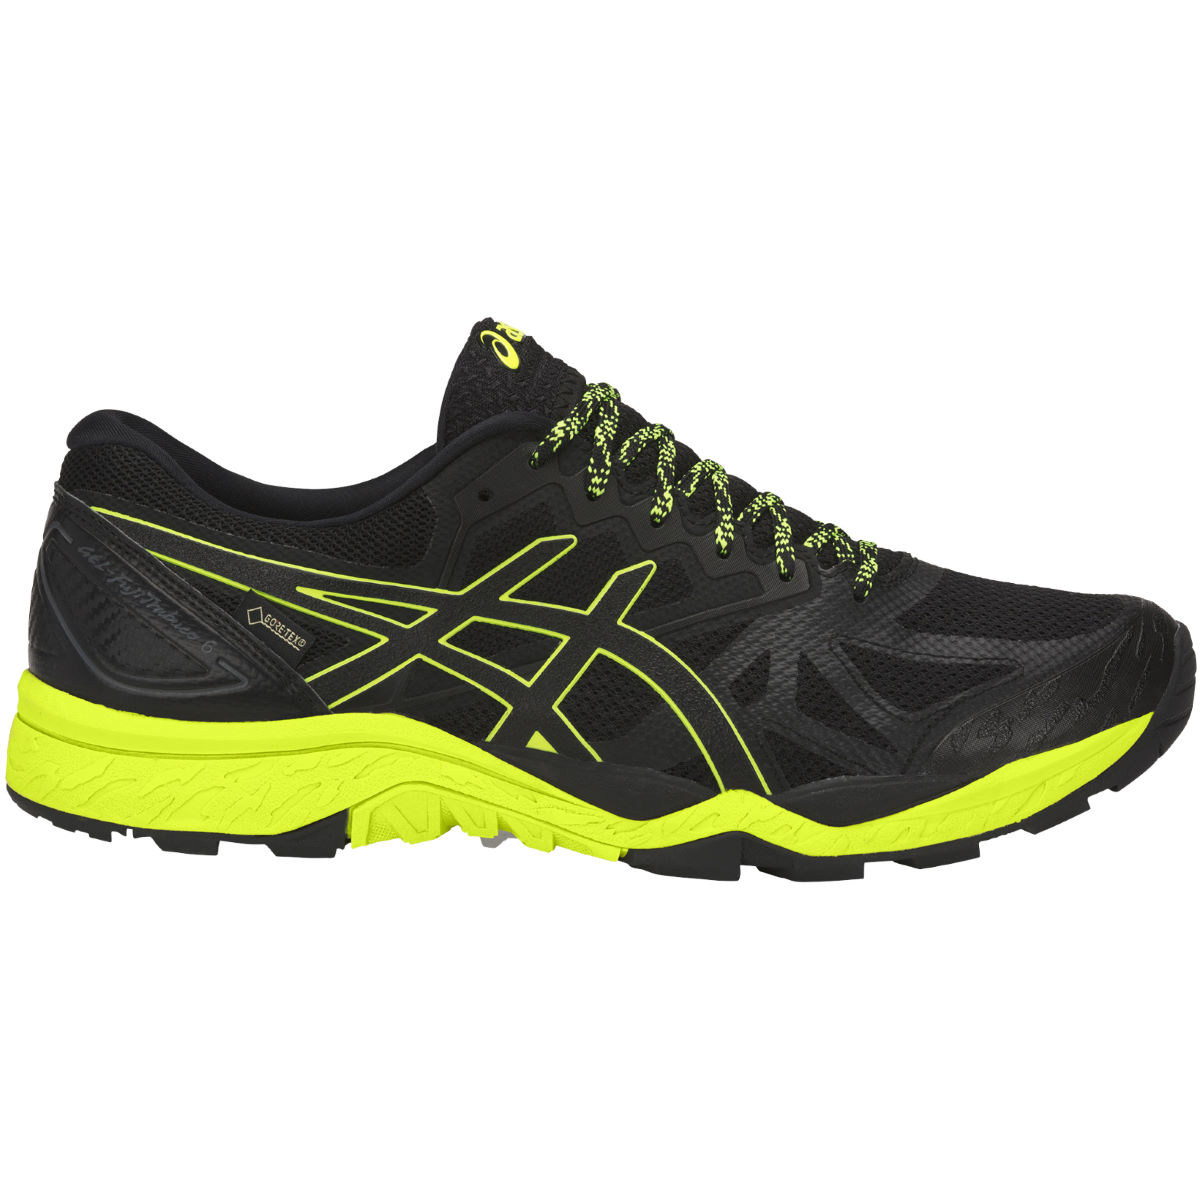 Chaussures Asics Gel-Fujitrabuco 6 GTX - UK 8 BLACK/SAFETY YELLOW/